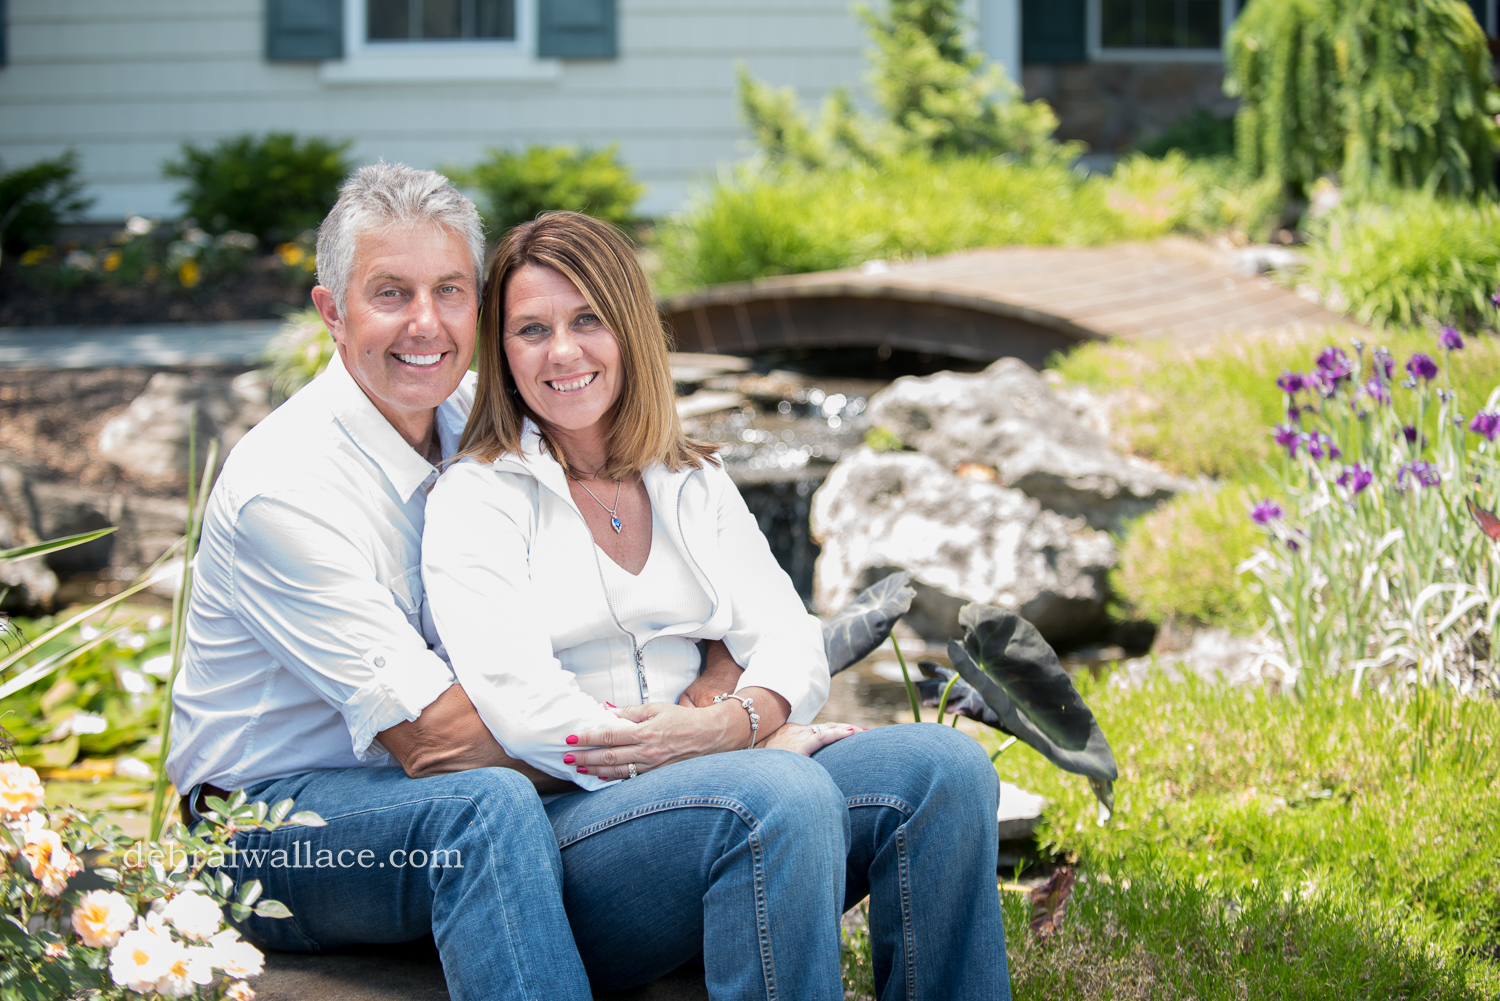 Penfield NY Family Photos professional landscaping couples photography